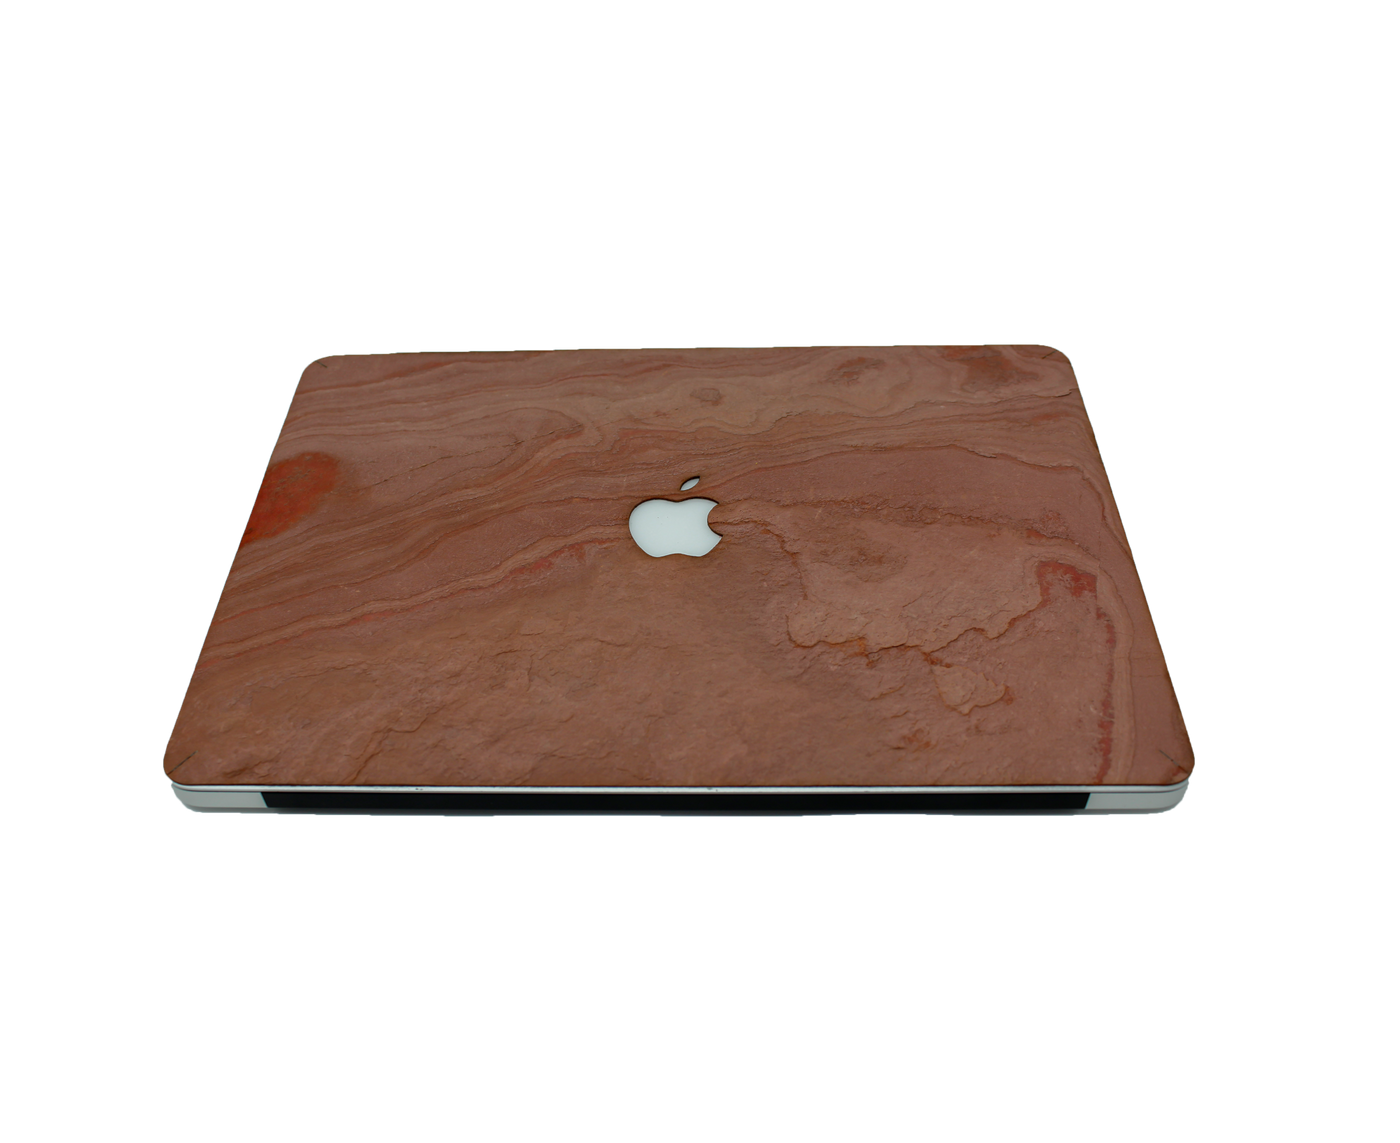 red-planet-touchbar